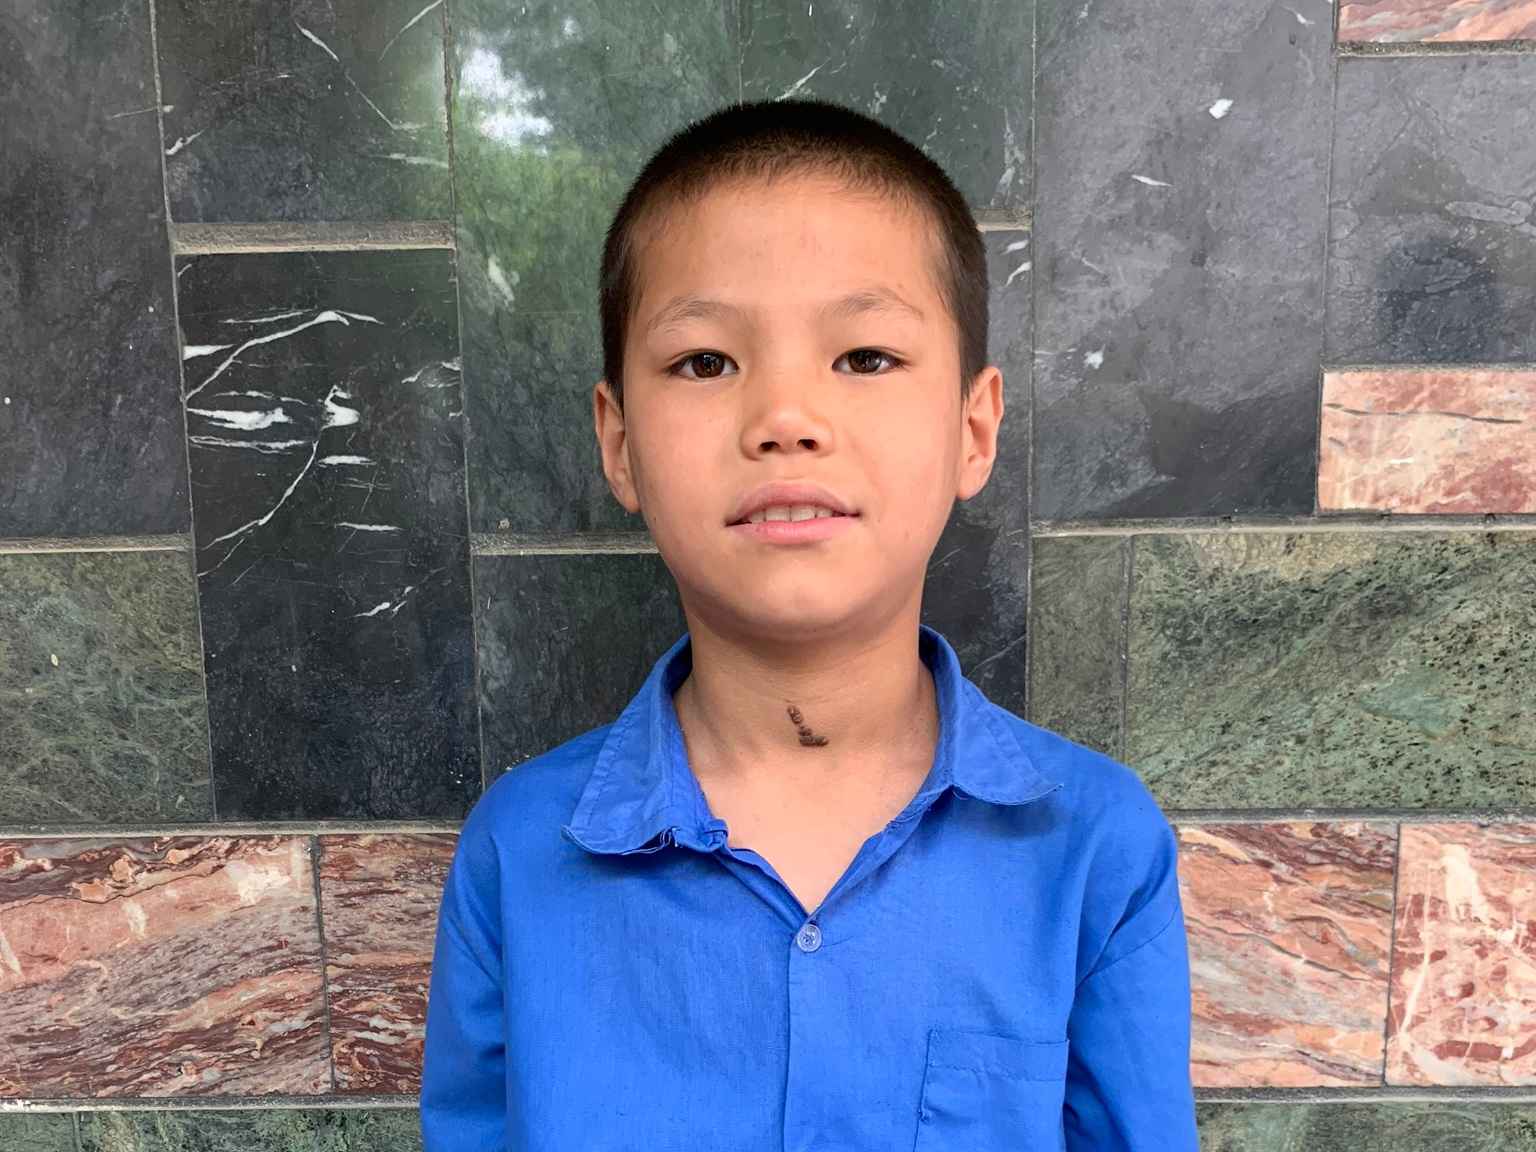 Mohammad Riza, 10 - Mohammad Riza has 7 siblings.. His mother does not have work and his father is a day laborer with a wheelbarrow.BE MOHAMMAD RIZA'S PARTNER>